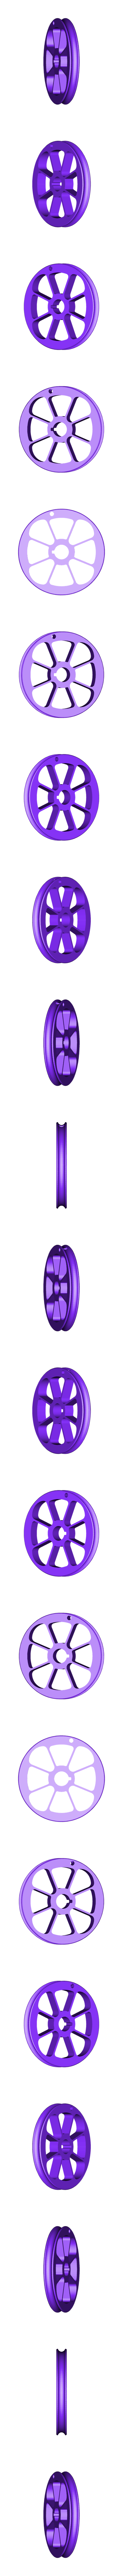 3d_fjp_dynamometre_pulley.stl Download STL file Dynamometer • 3D printing object, 3d-fabric-jean-pierre